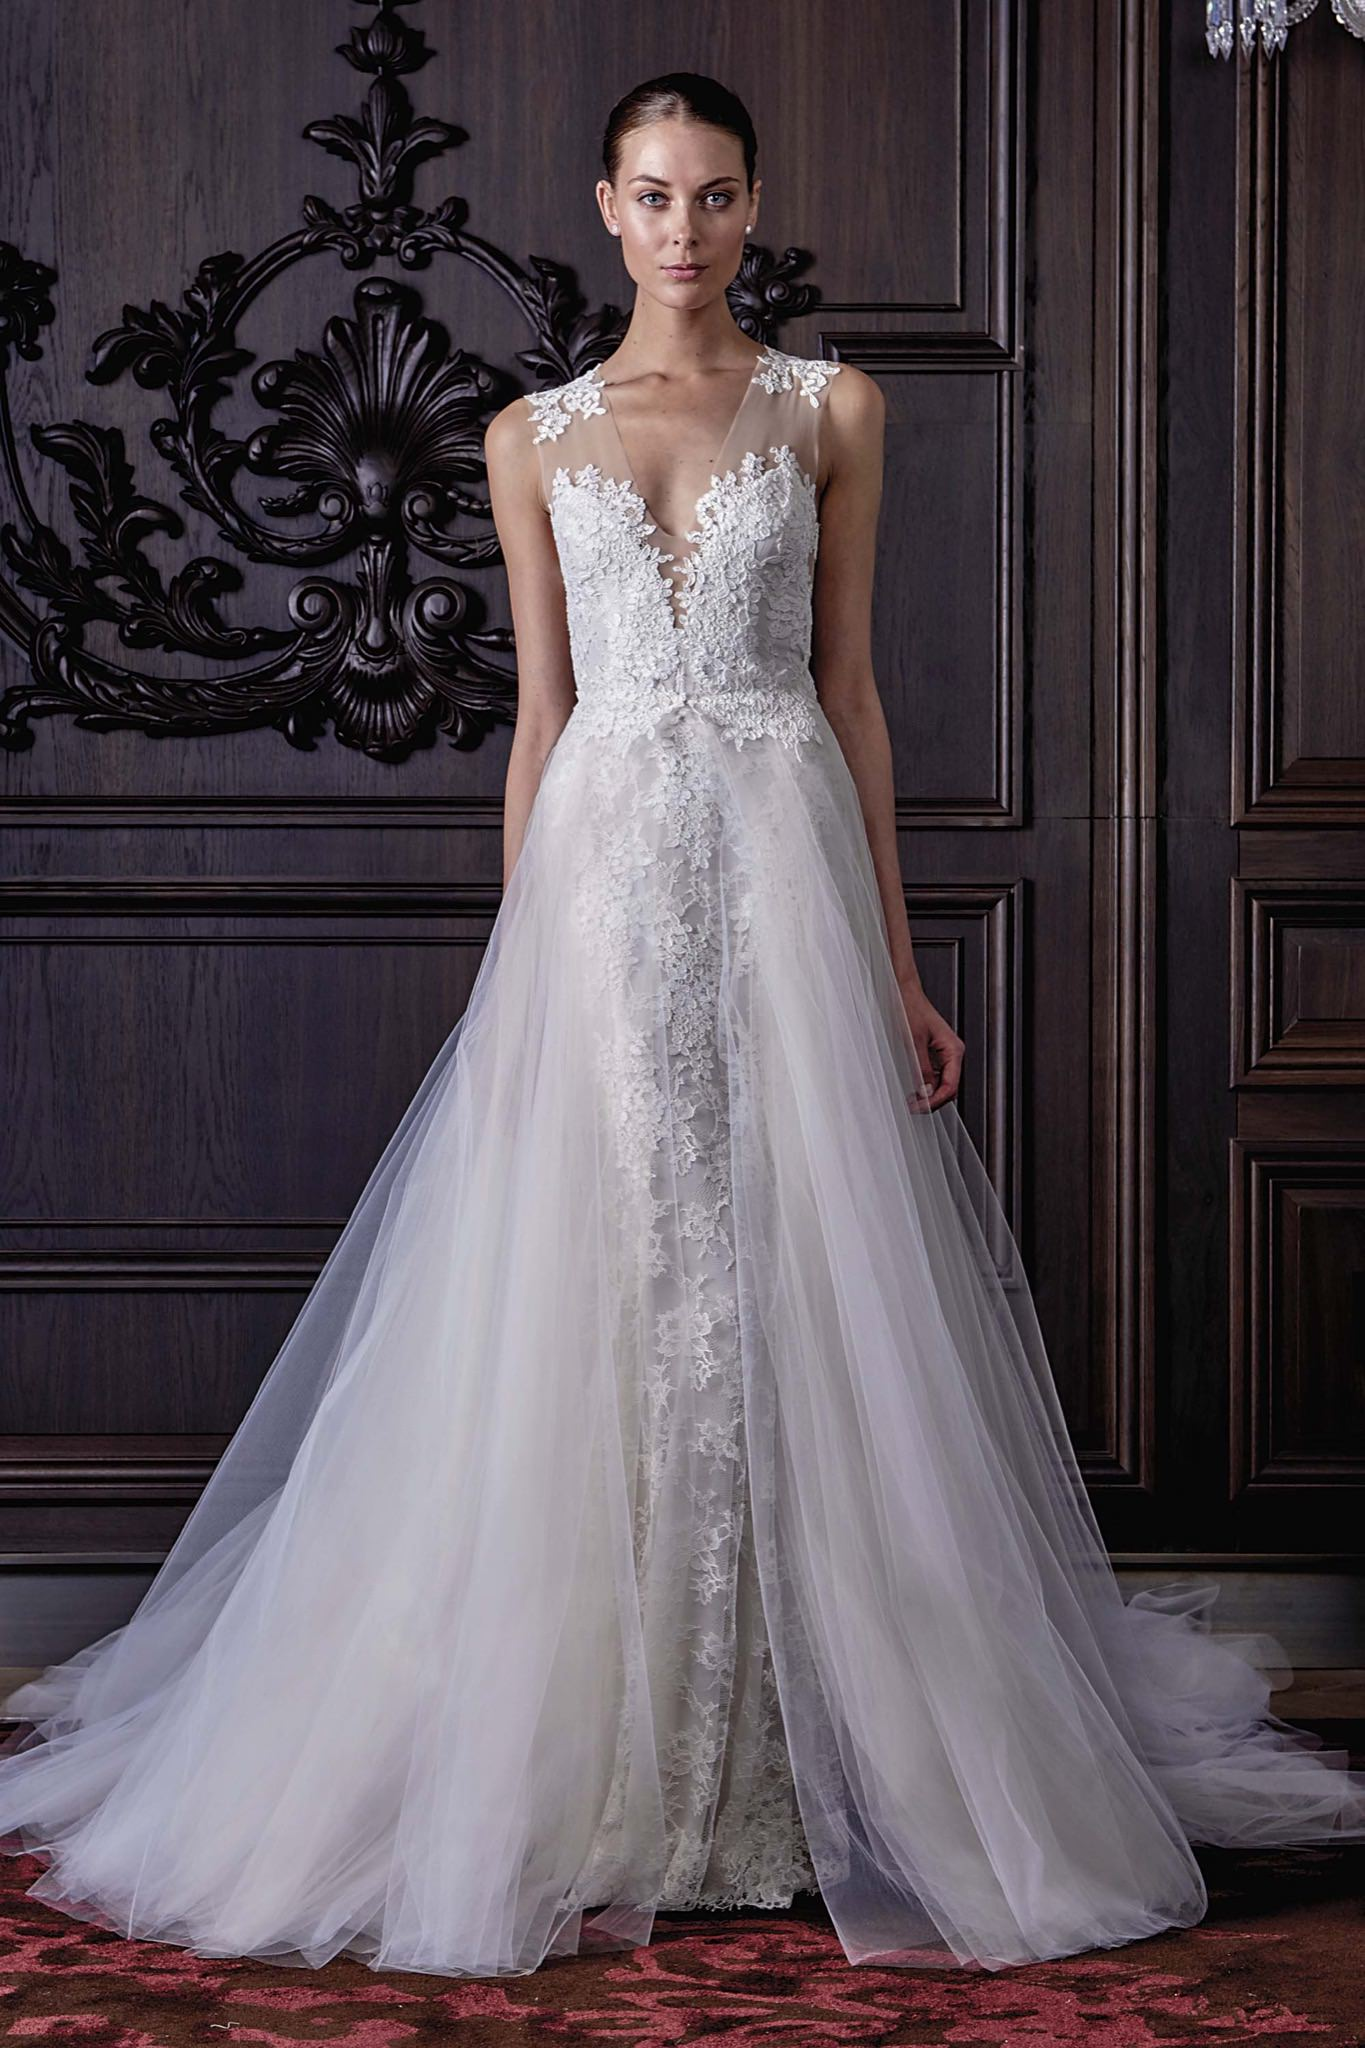 Monique Lhuillier Lamour wedding dress - Browns Bride